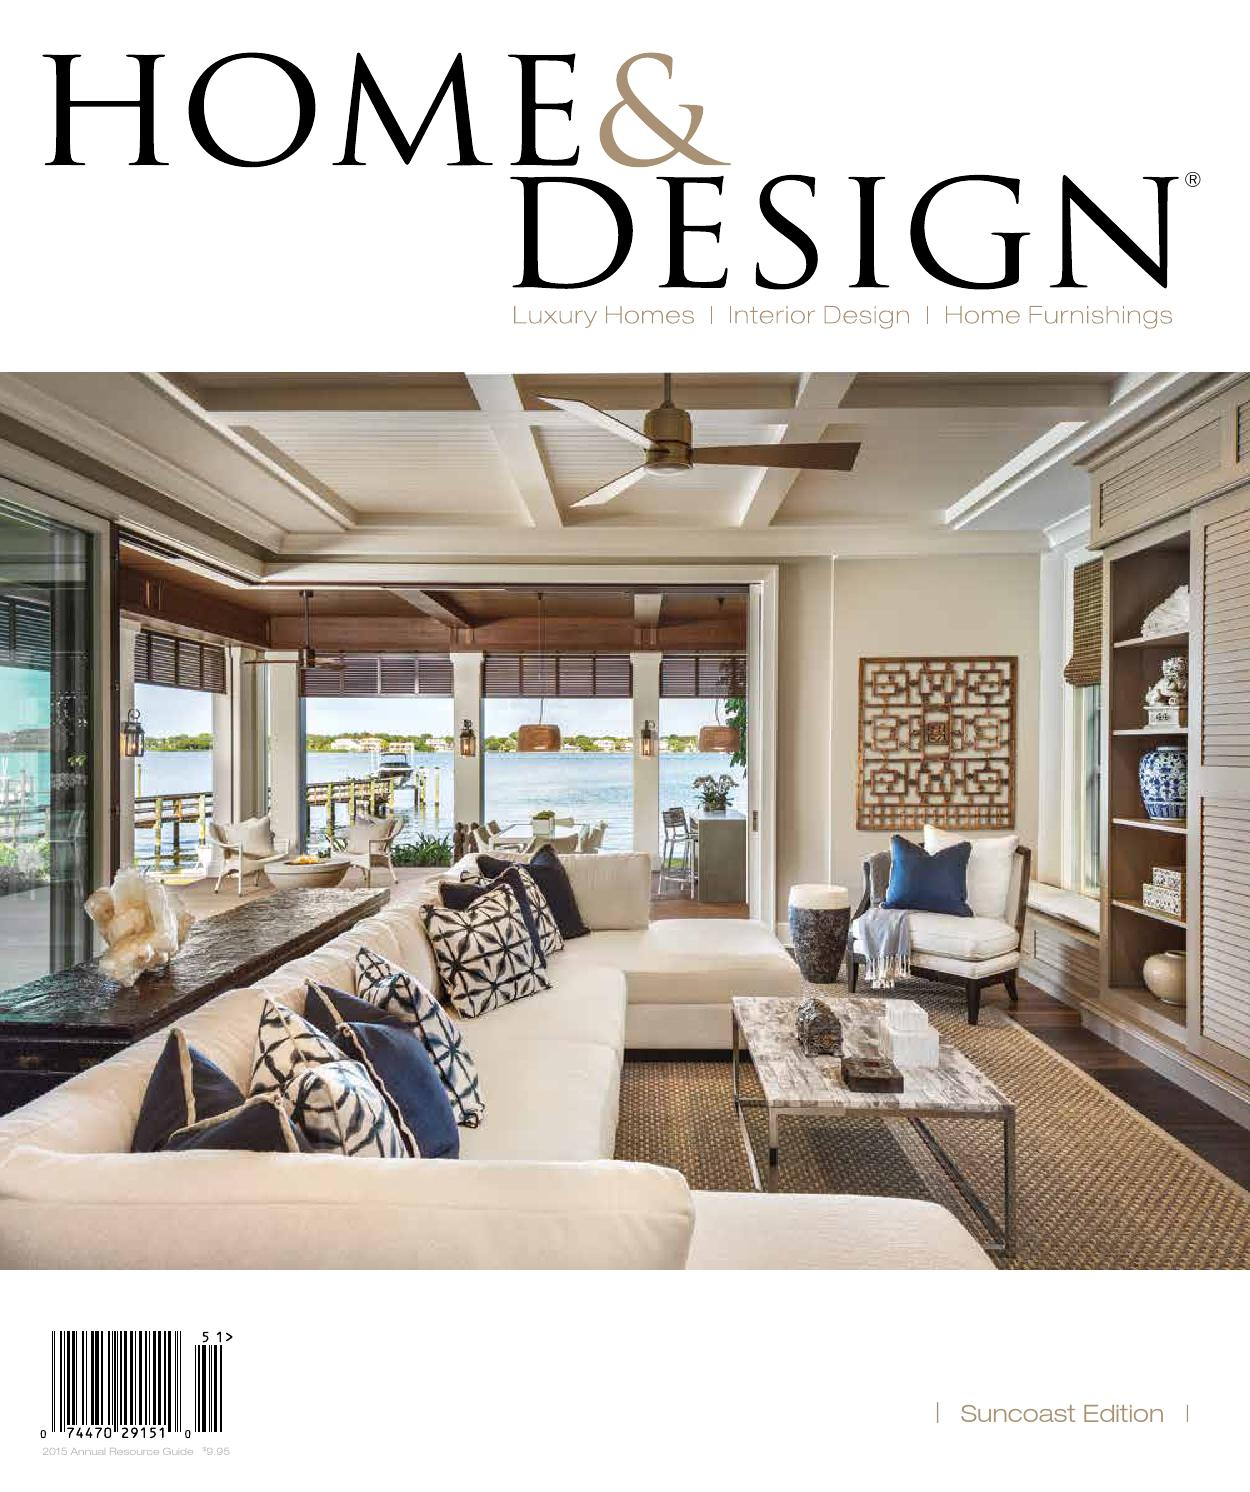 Home design magazine annual resource guide 2015 for Modern interior design magazines